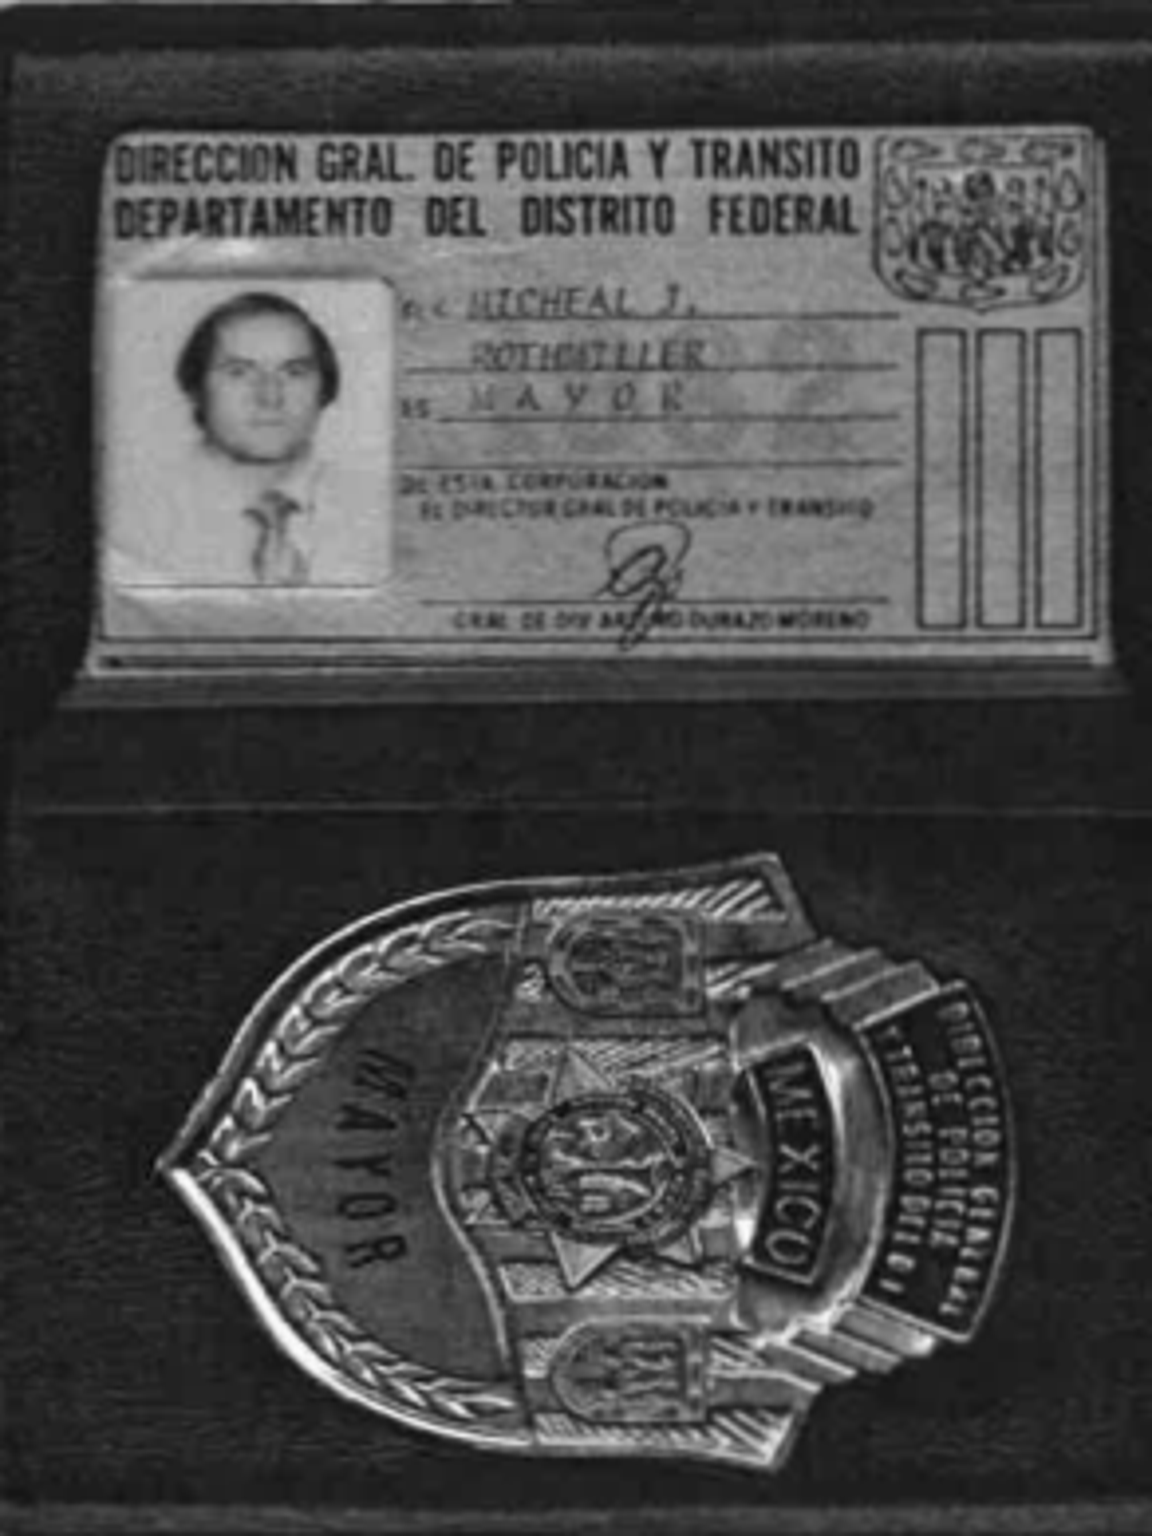 Mike Rothmiller's Federale Police badge provided by Arturo Durazo Moreno, bearing the rank of major. Rothmiller could carry firearms and explosives in Mexico with his credentials.